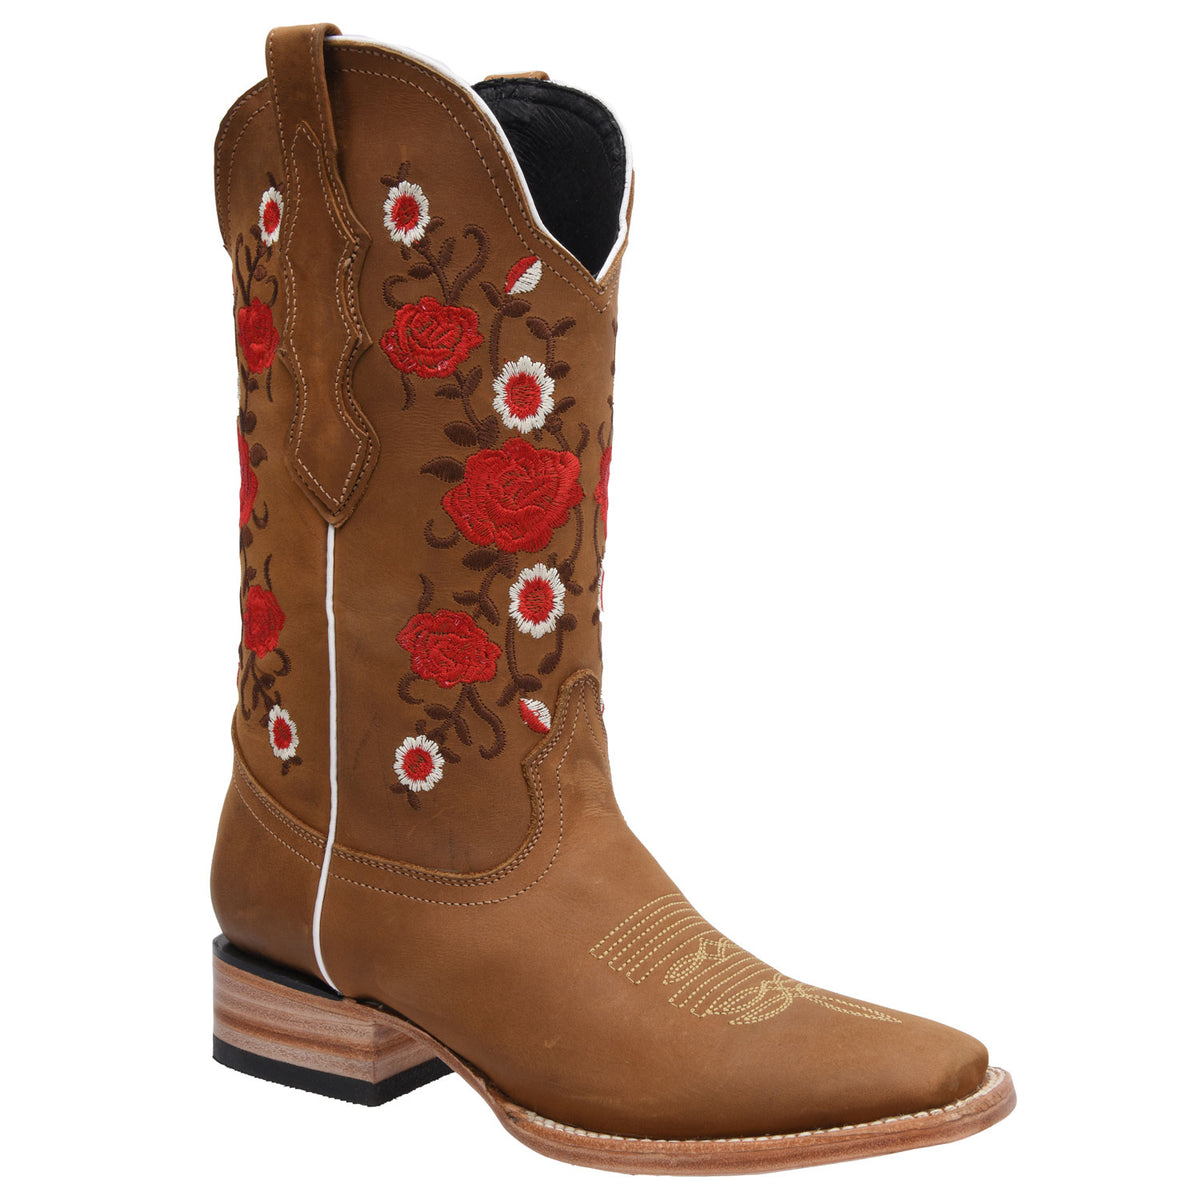 Genuine Leather Boot WD548-551